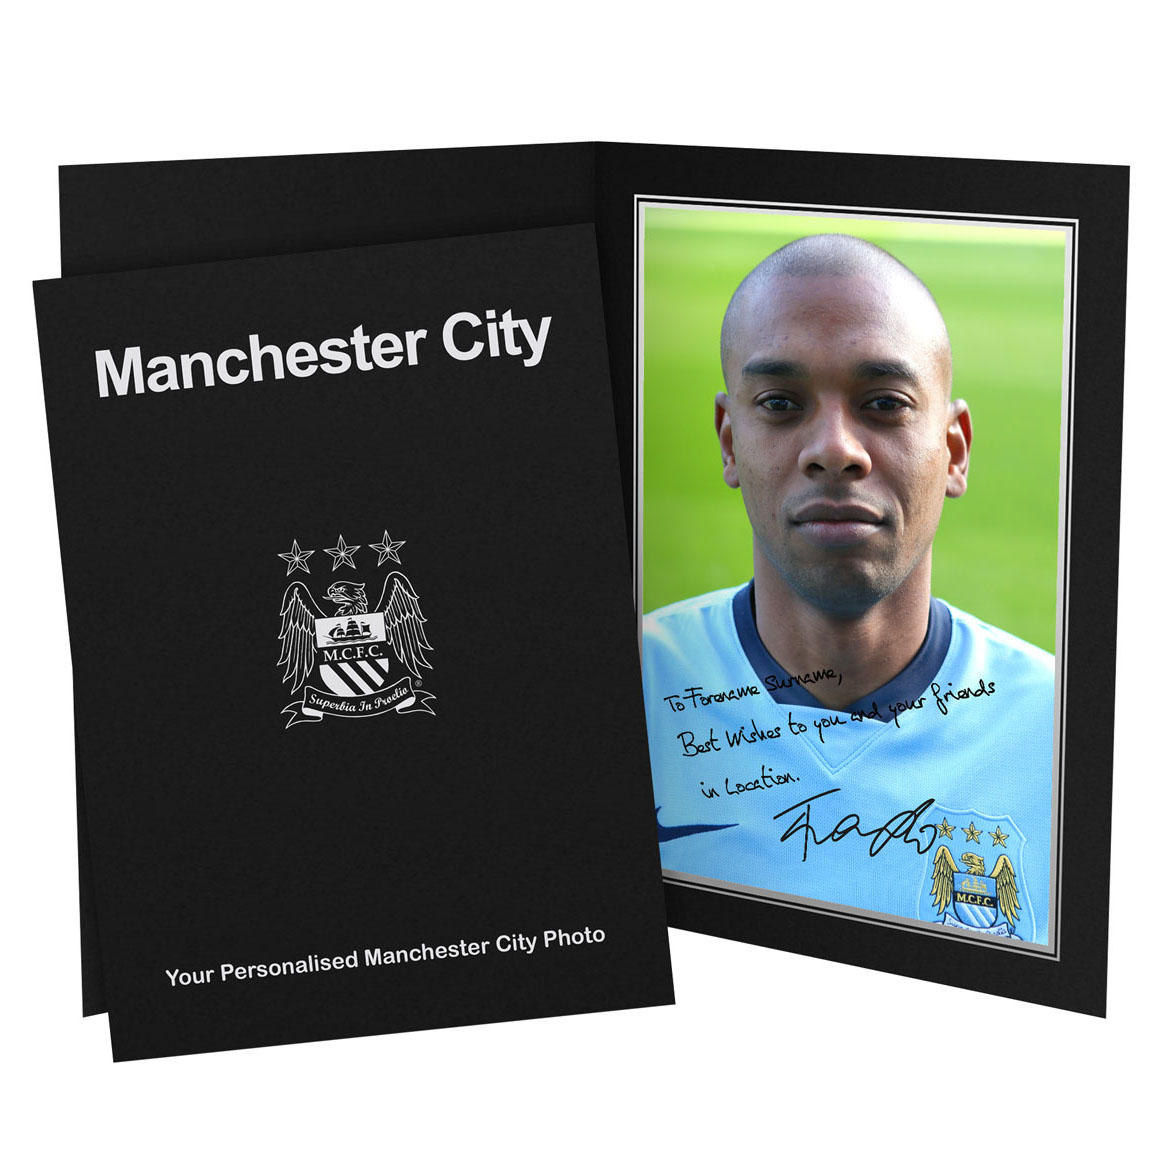 Manchester City Personalised Signature Photo in Presentation Folder - Fernandinho